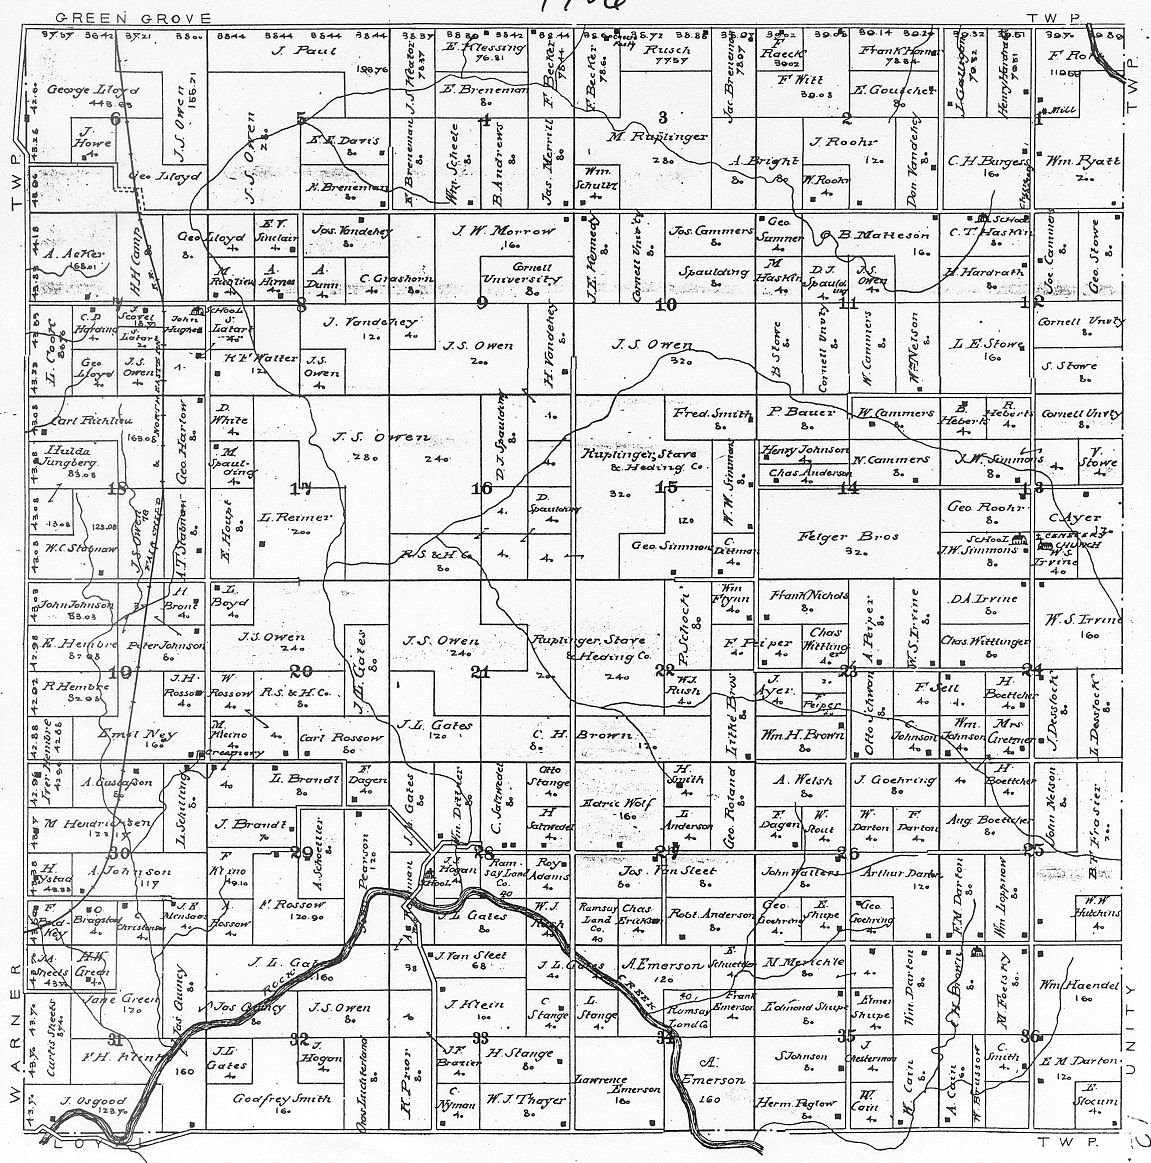 . maps of beaver township clark co wis